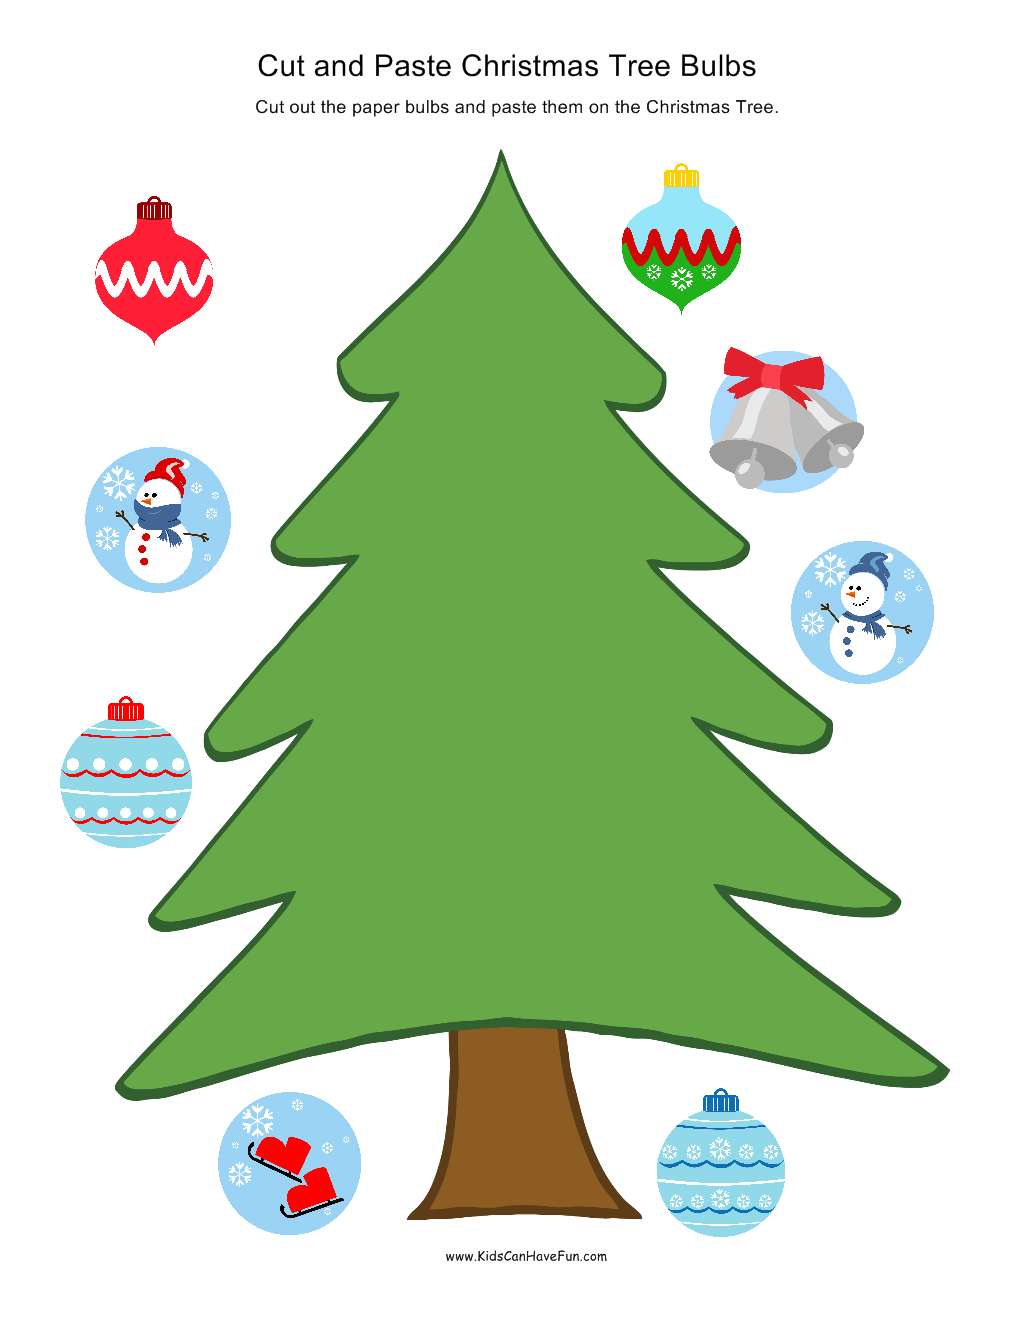 Cut and Paste Christmas Tree Bulbs   kids games   Pinterest ...